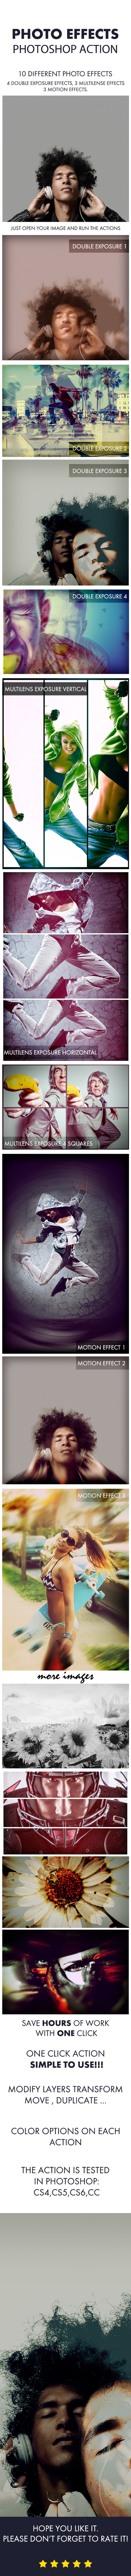 GraphicRiver Photo Effects Photoshop Action 11932670